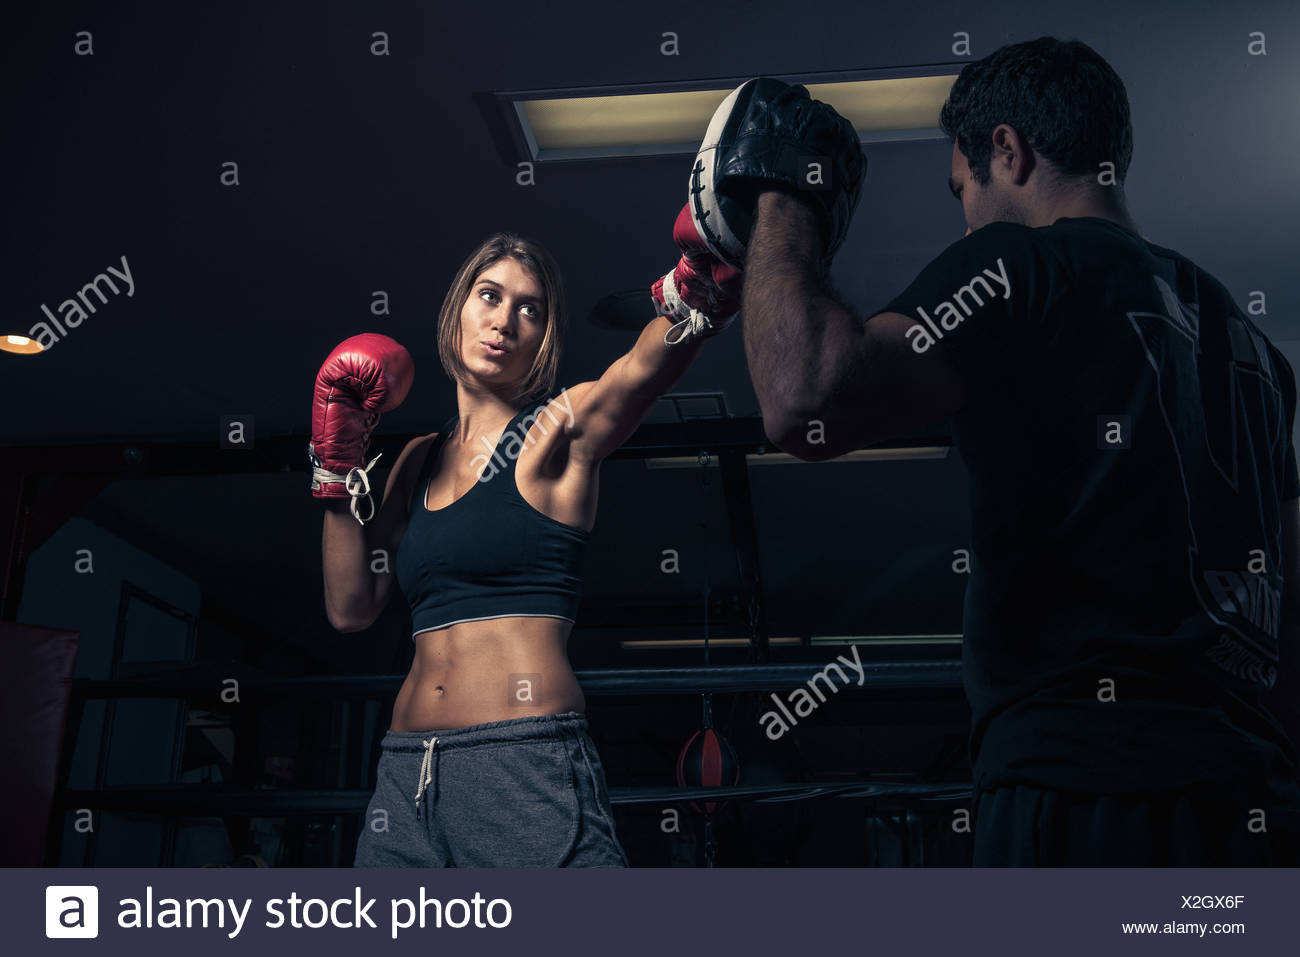 Female boxer punching instructor's punch shield - Stock Image